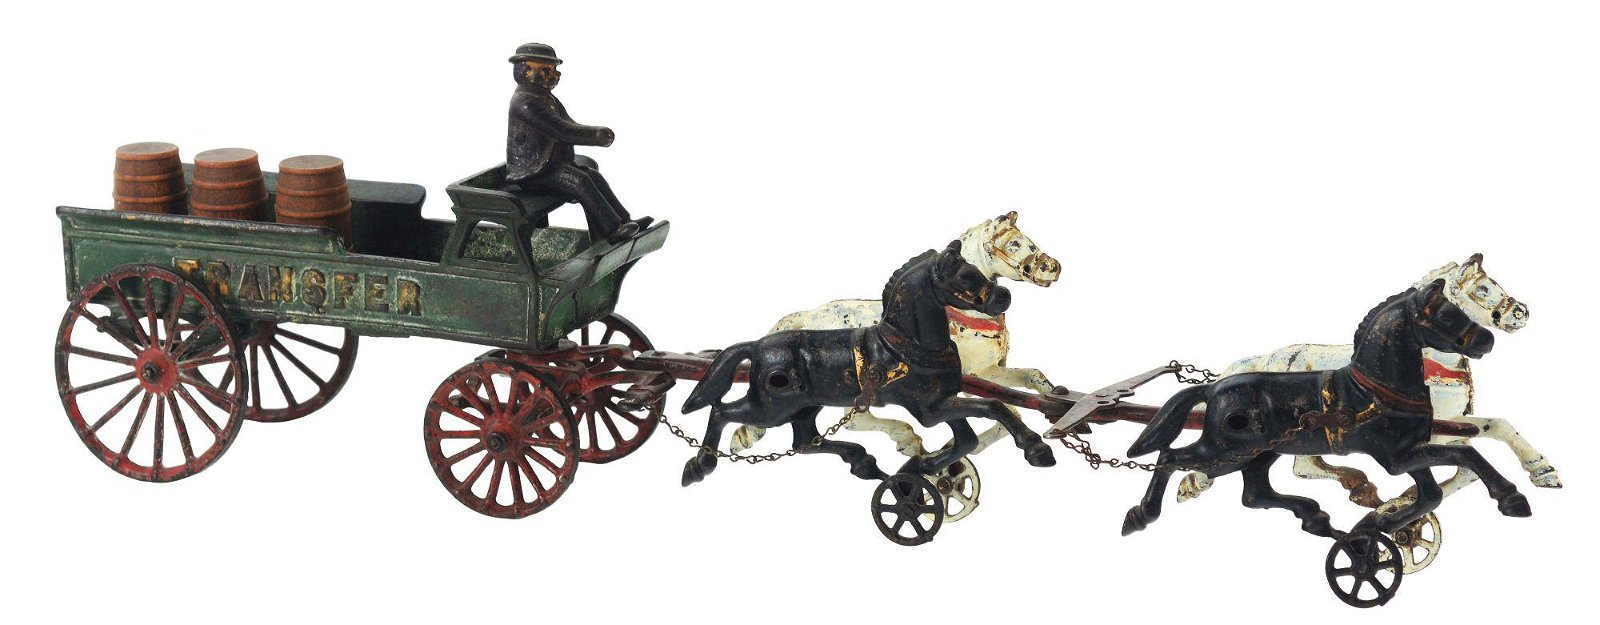 DENT CAST IRON FOUR HORSE DRAWN TRANSFER WAGON.